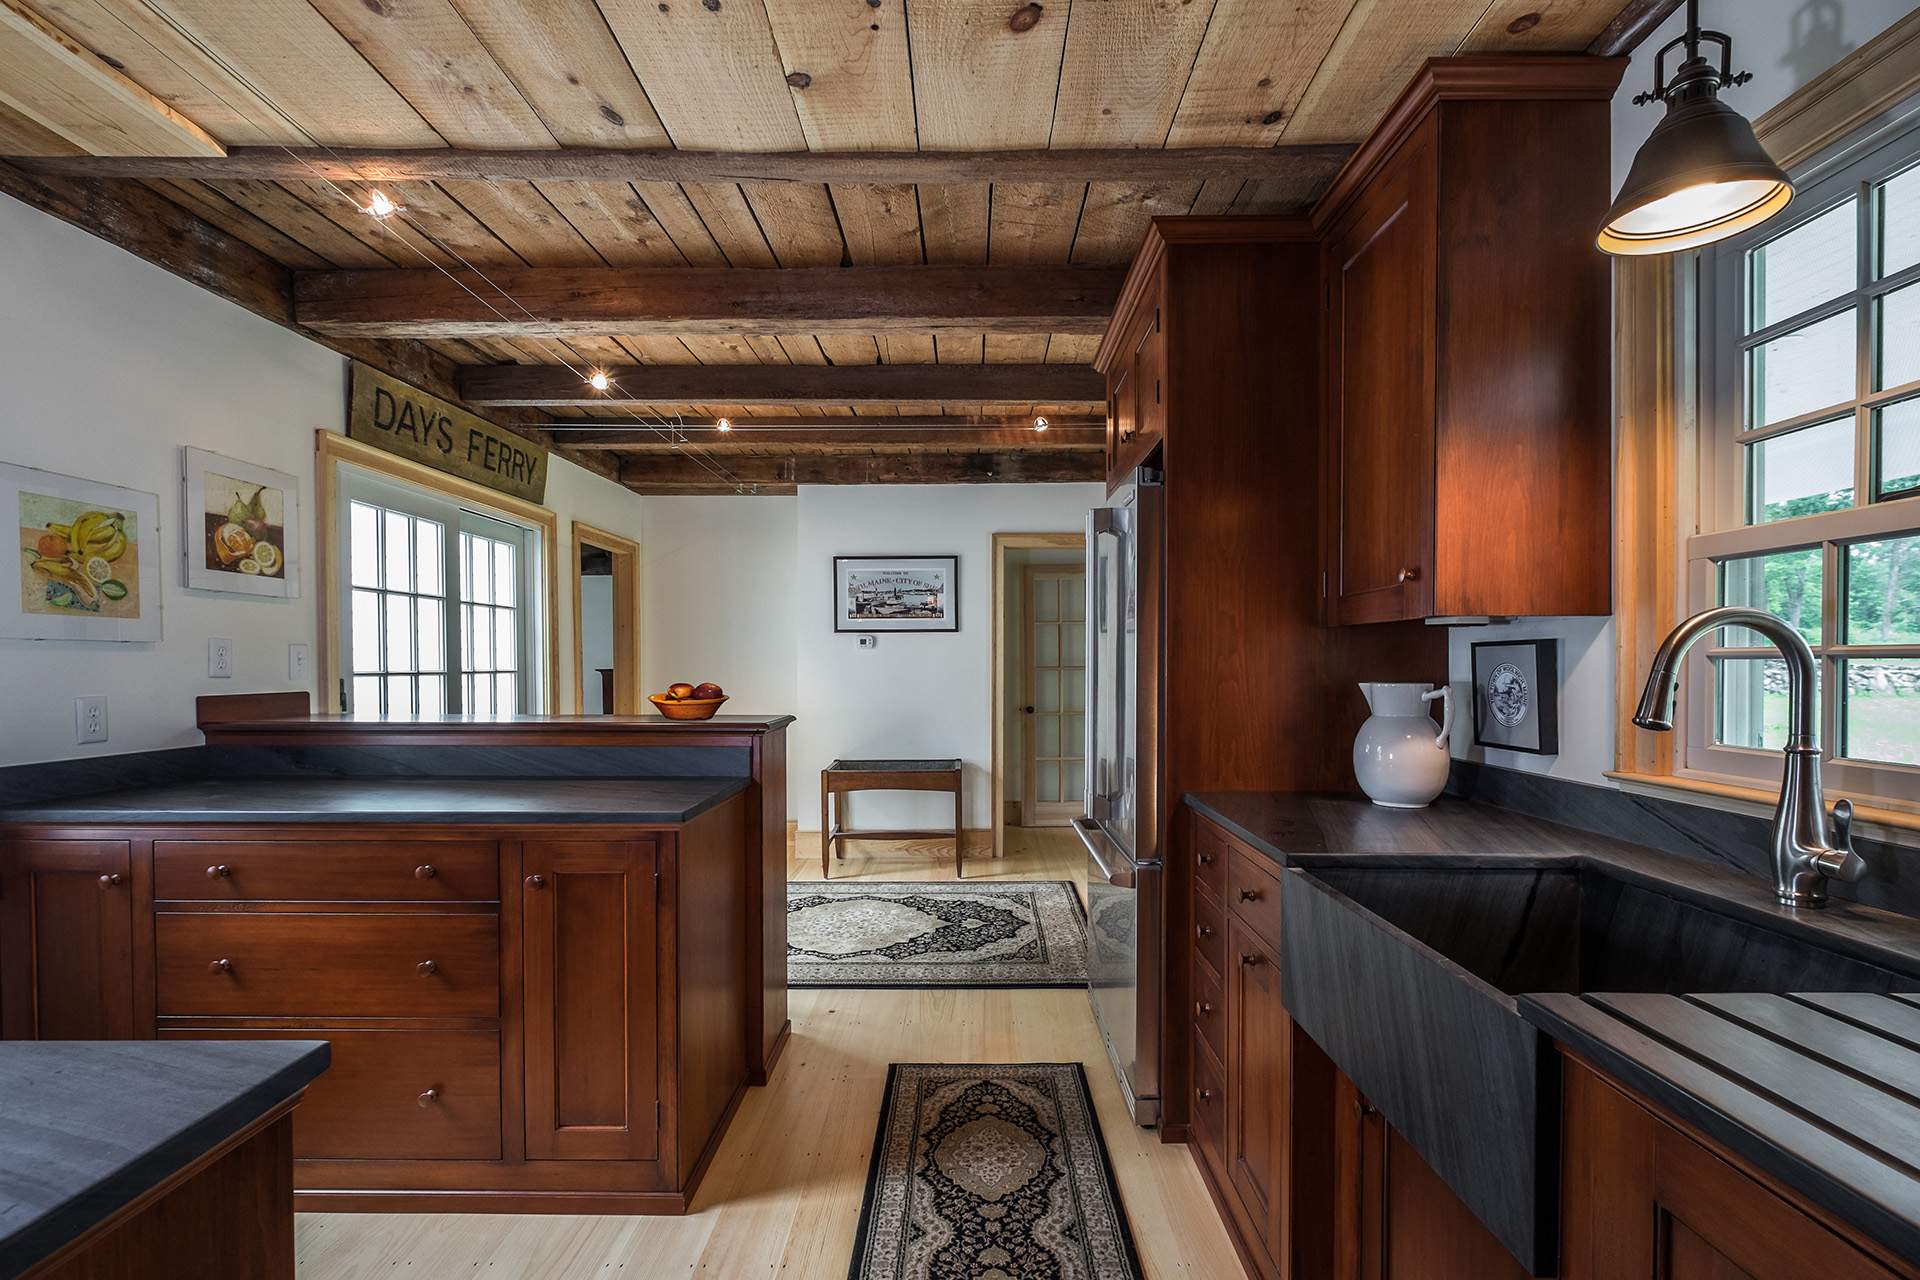 Farmhouse Kitchen featuring wood beams and dark wood cabinets